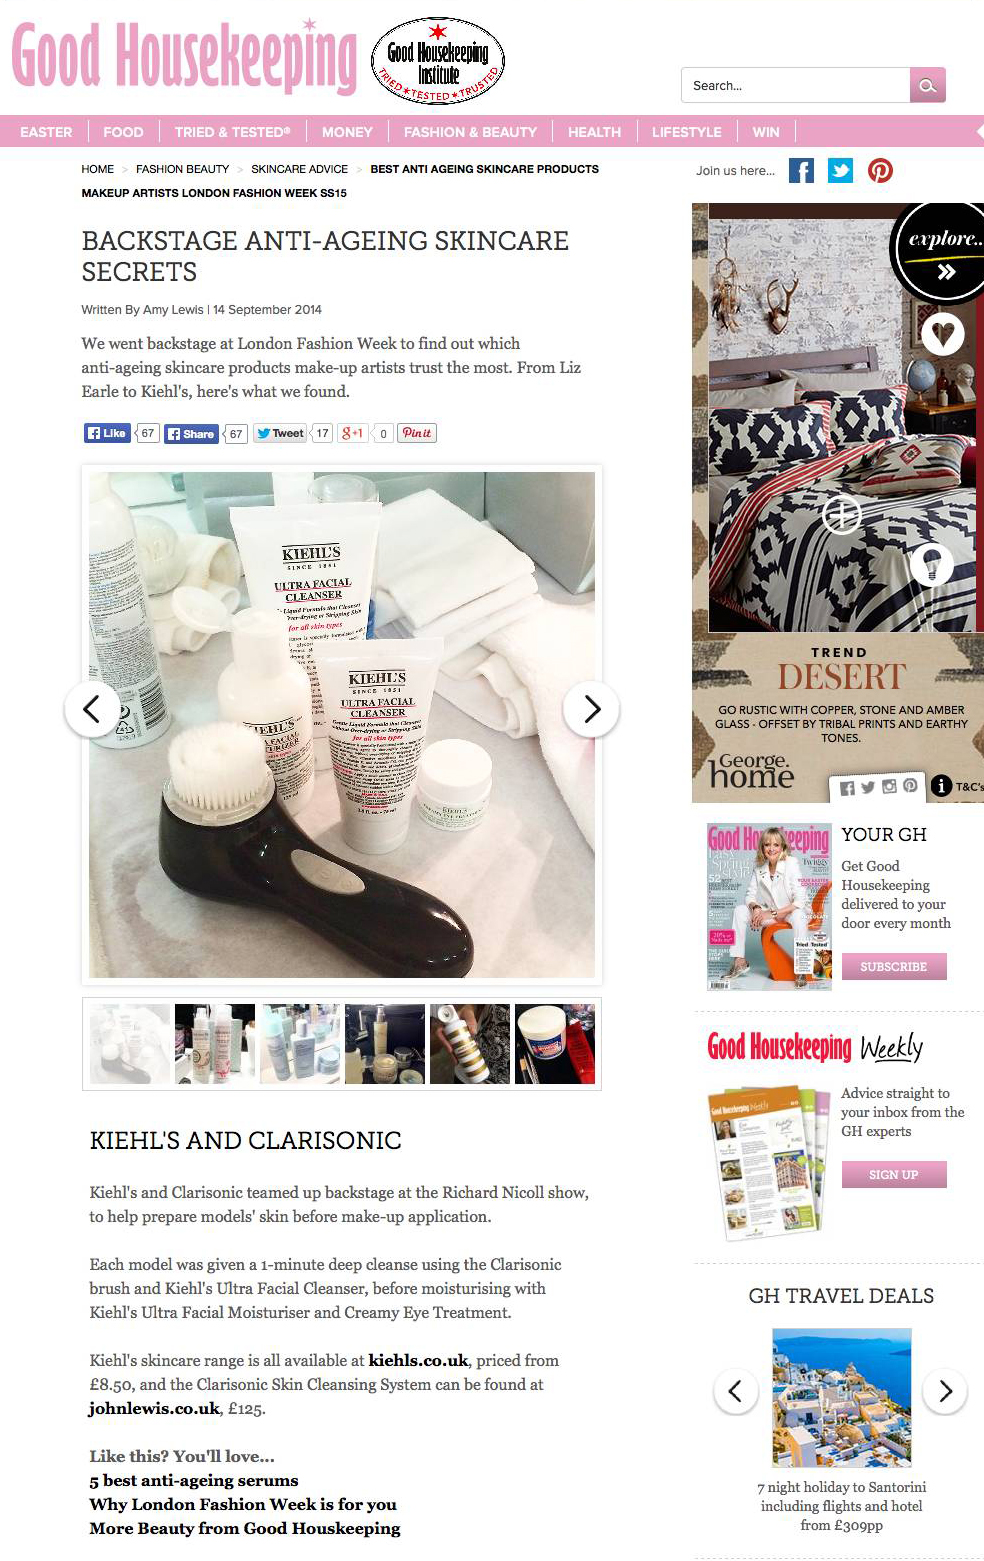 Anti-ageing_skincare_used_by_makeup_artists_-_Beauty_Tips_-_Good_Housekeeping_-_2015-03-21_11.25.17.png